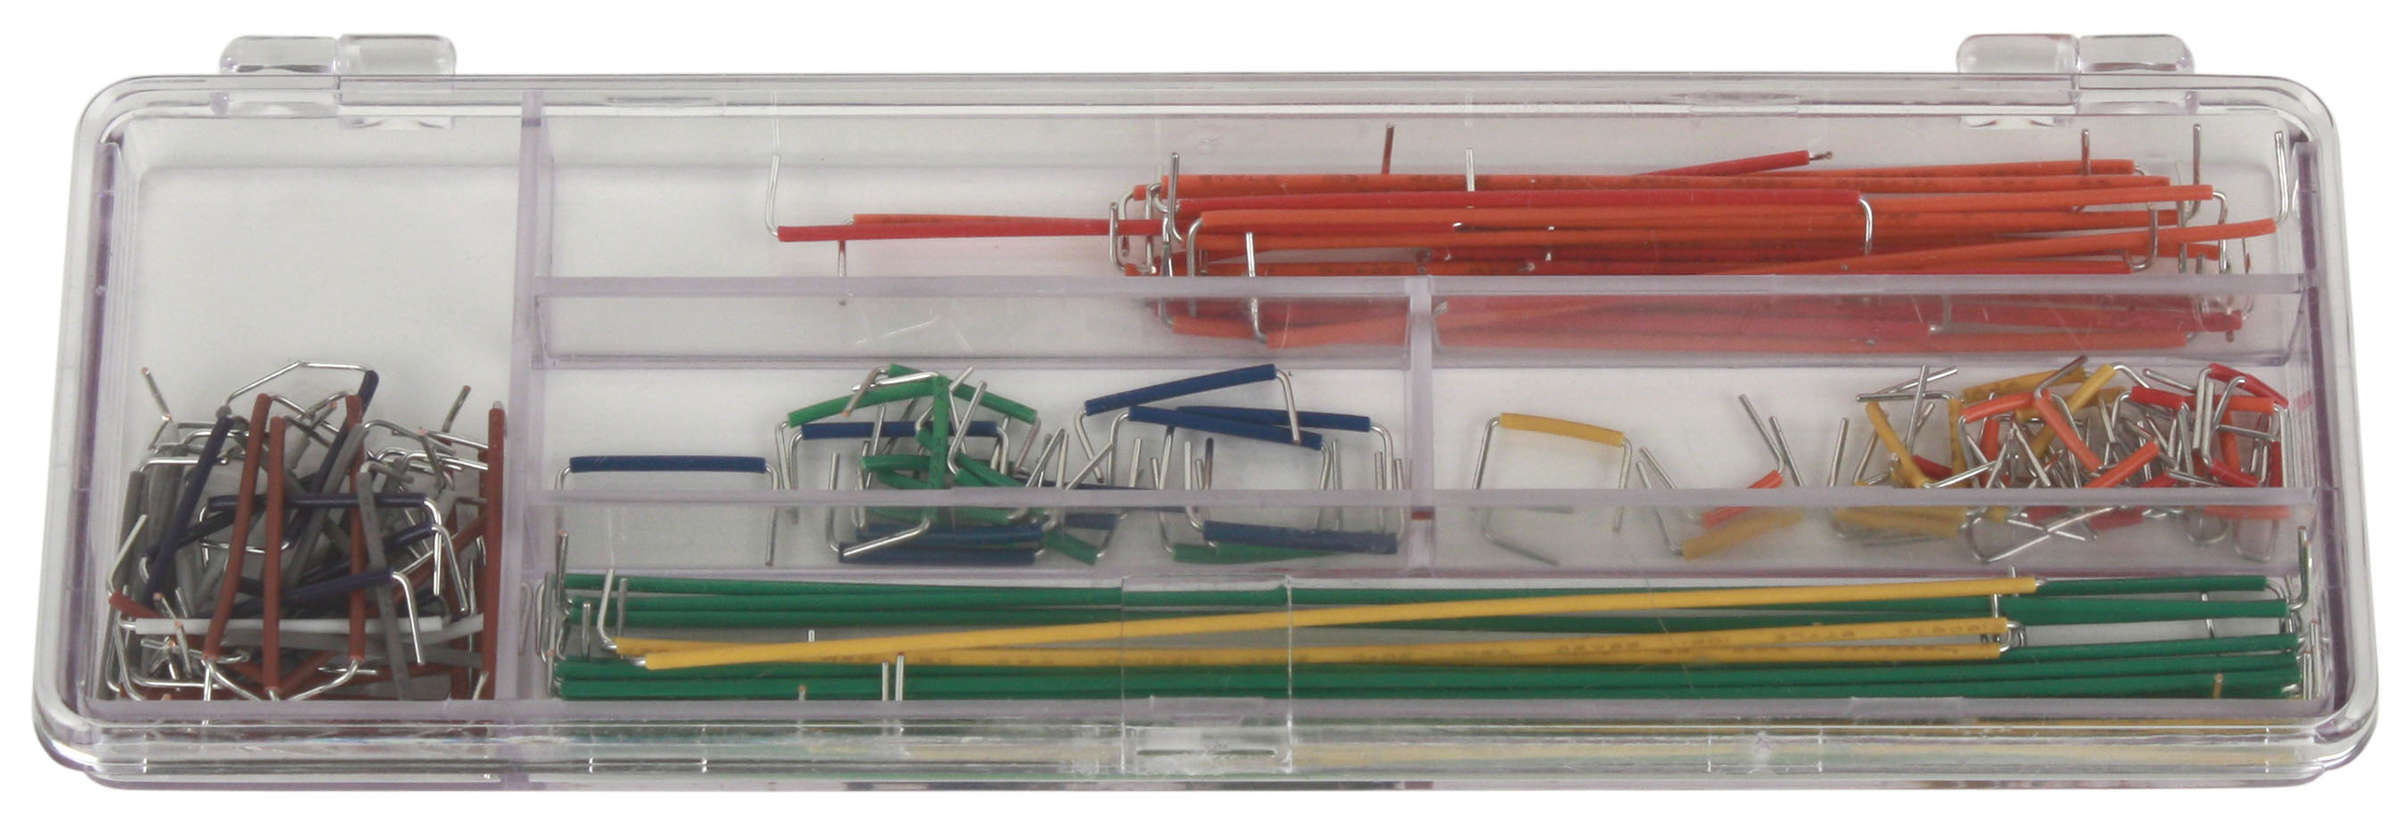 Click to preview image for the Global Specialties WK-2 Jumper Wire Kit, 140 Pcs